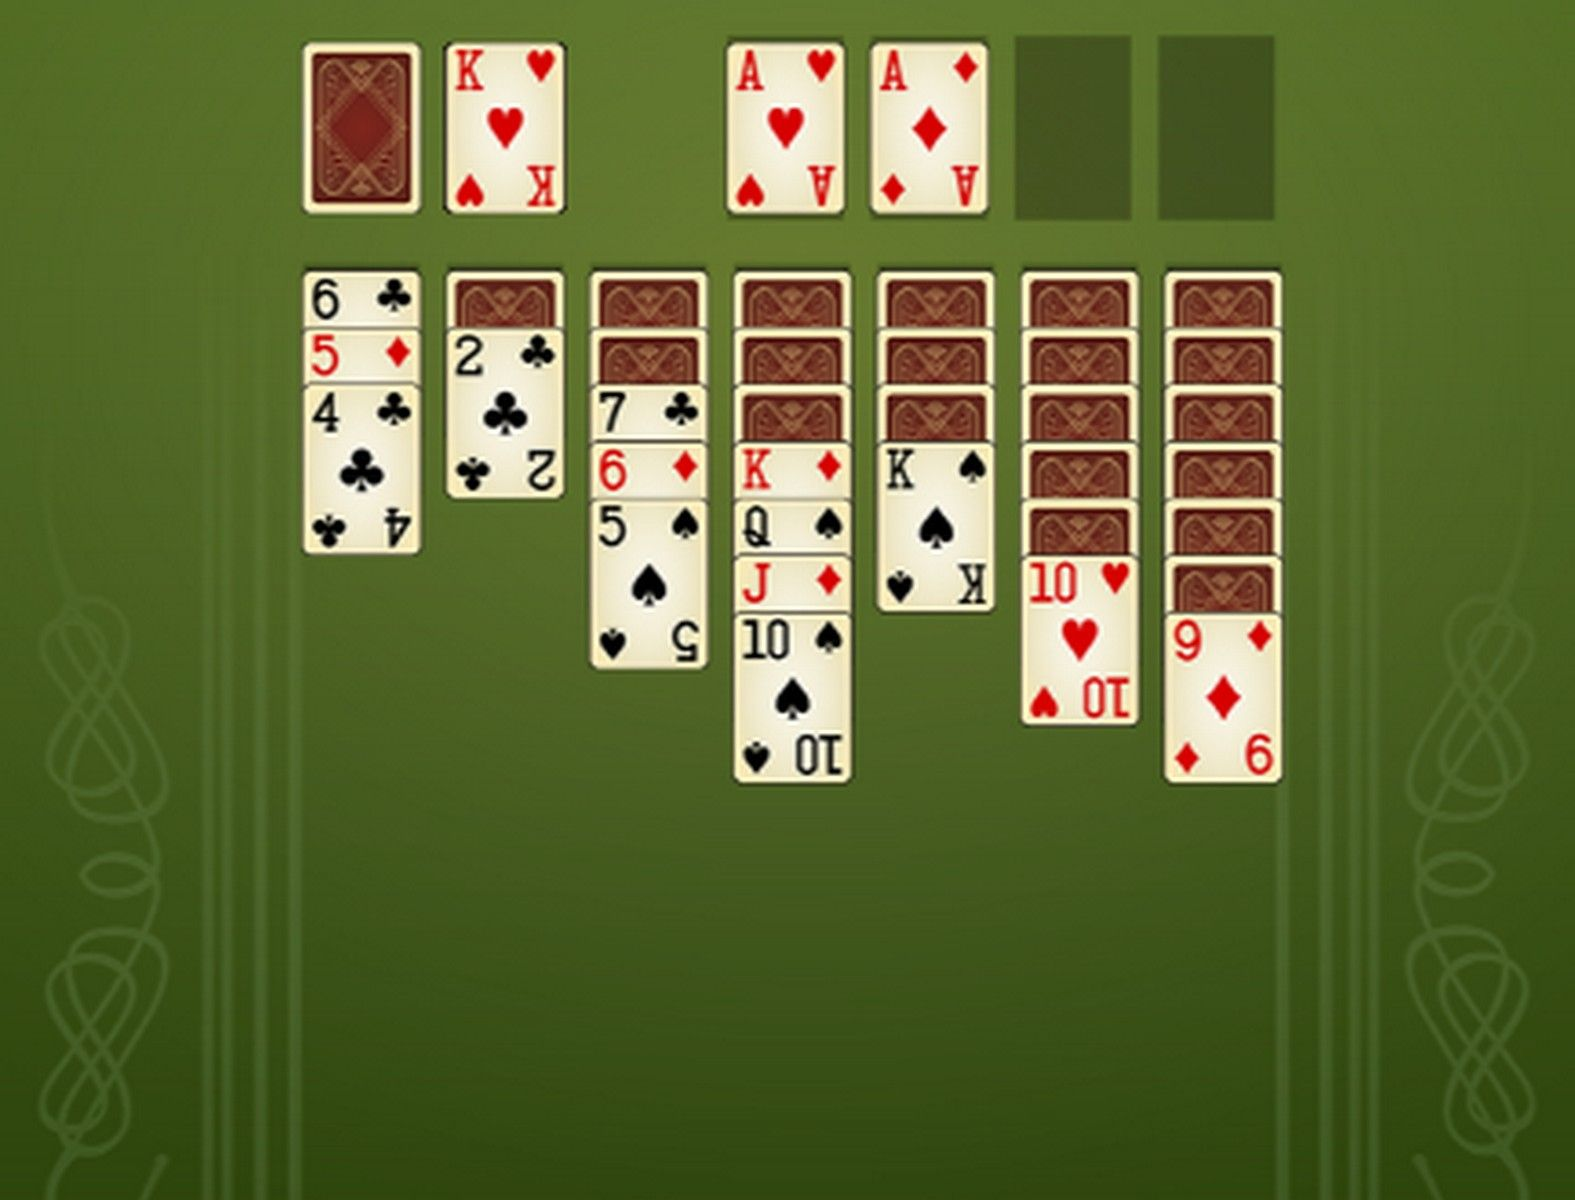 Solitaire Master One player card games, Card games